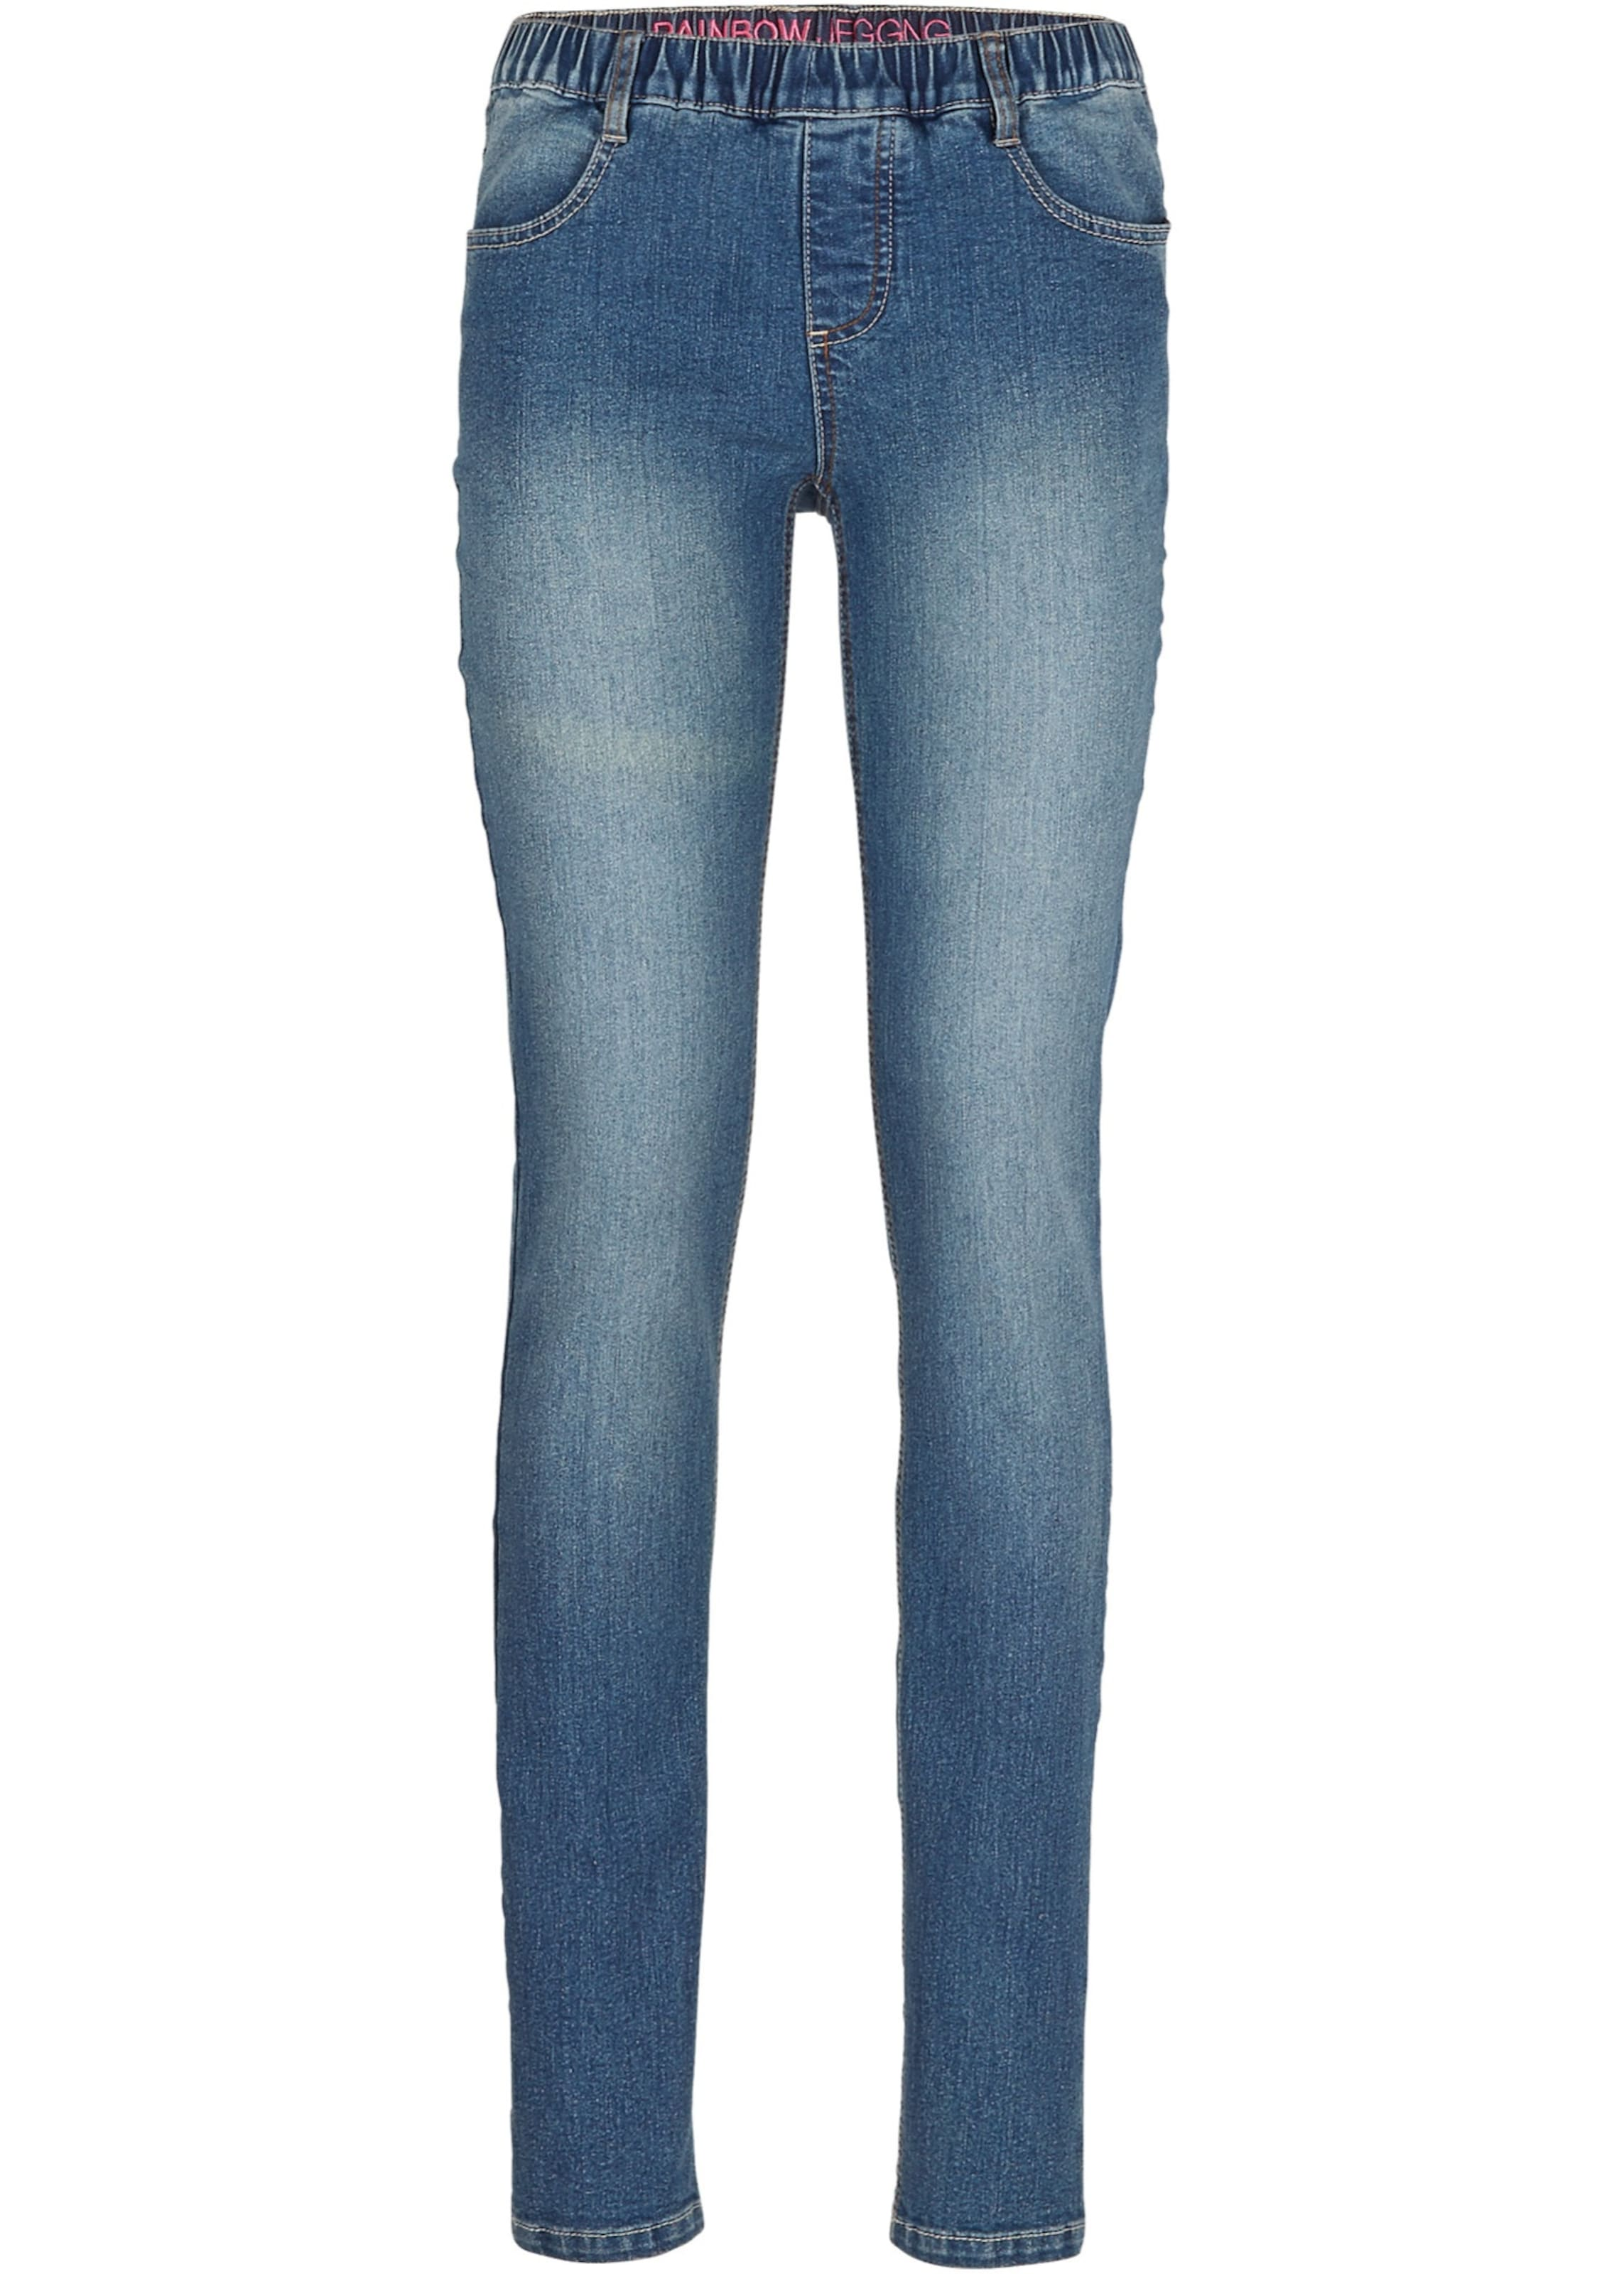 In Blau Bonprix Jeggings Jeggings Bonprix CxorWdBe